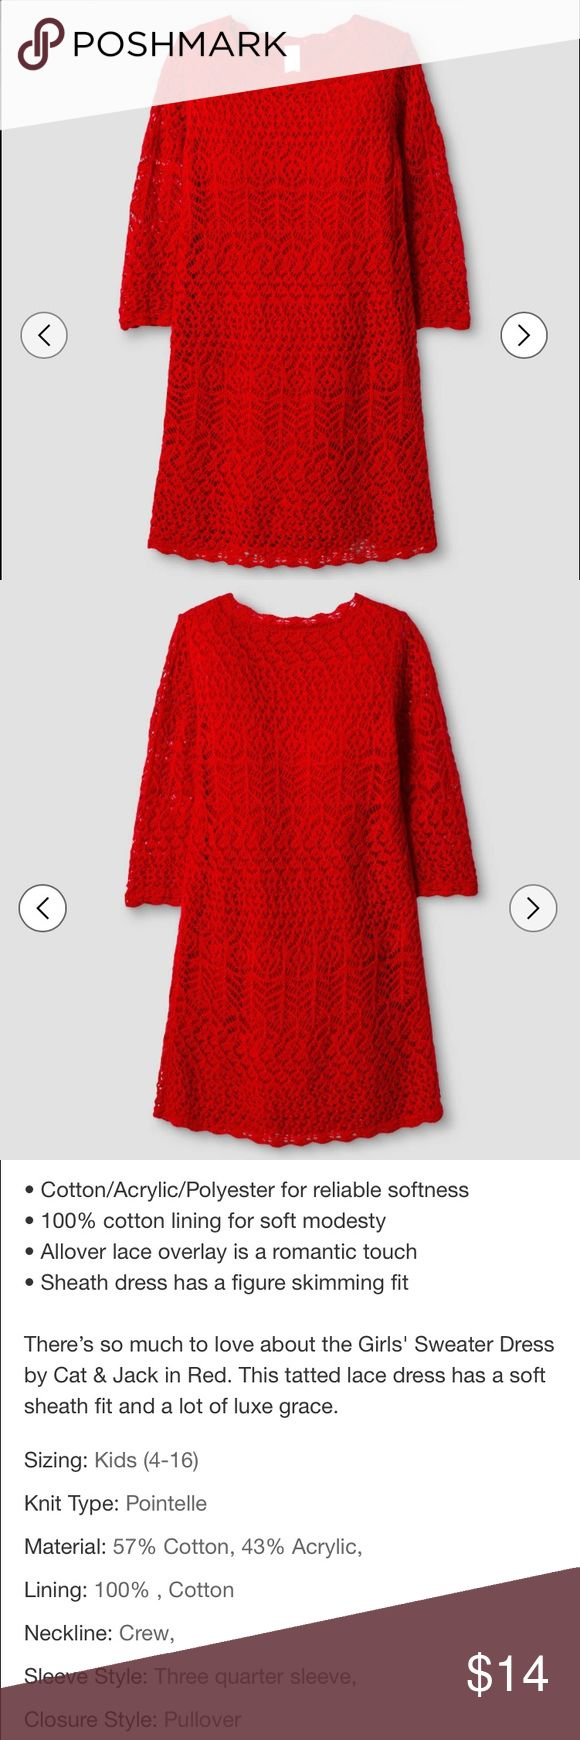 Red dress knit 6 inch